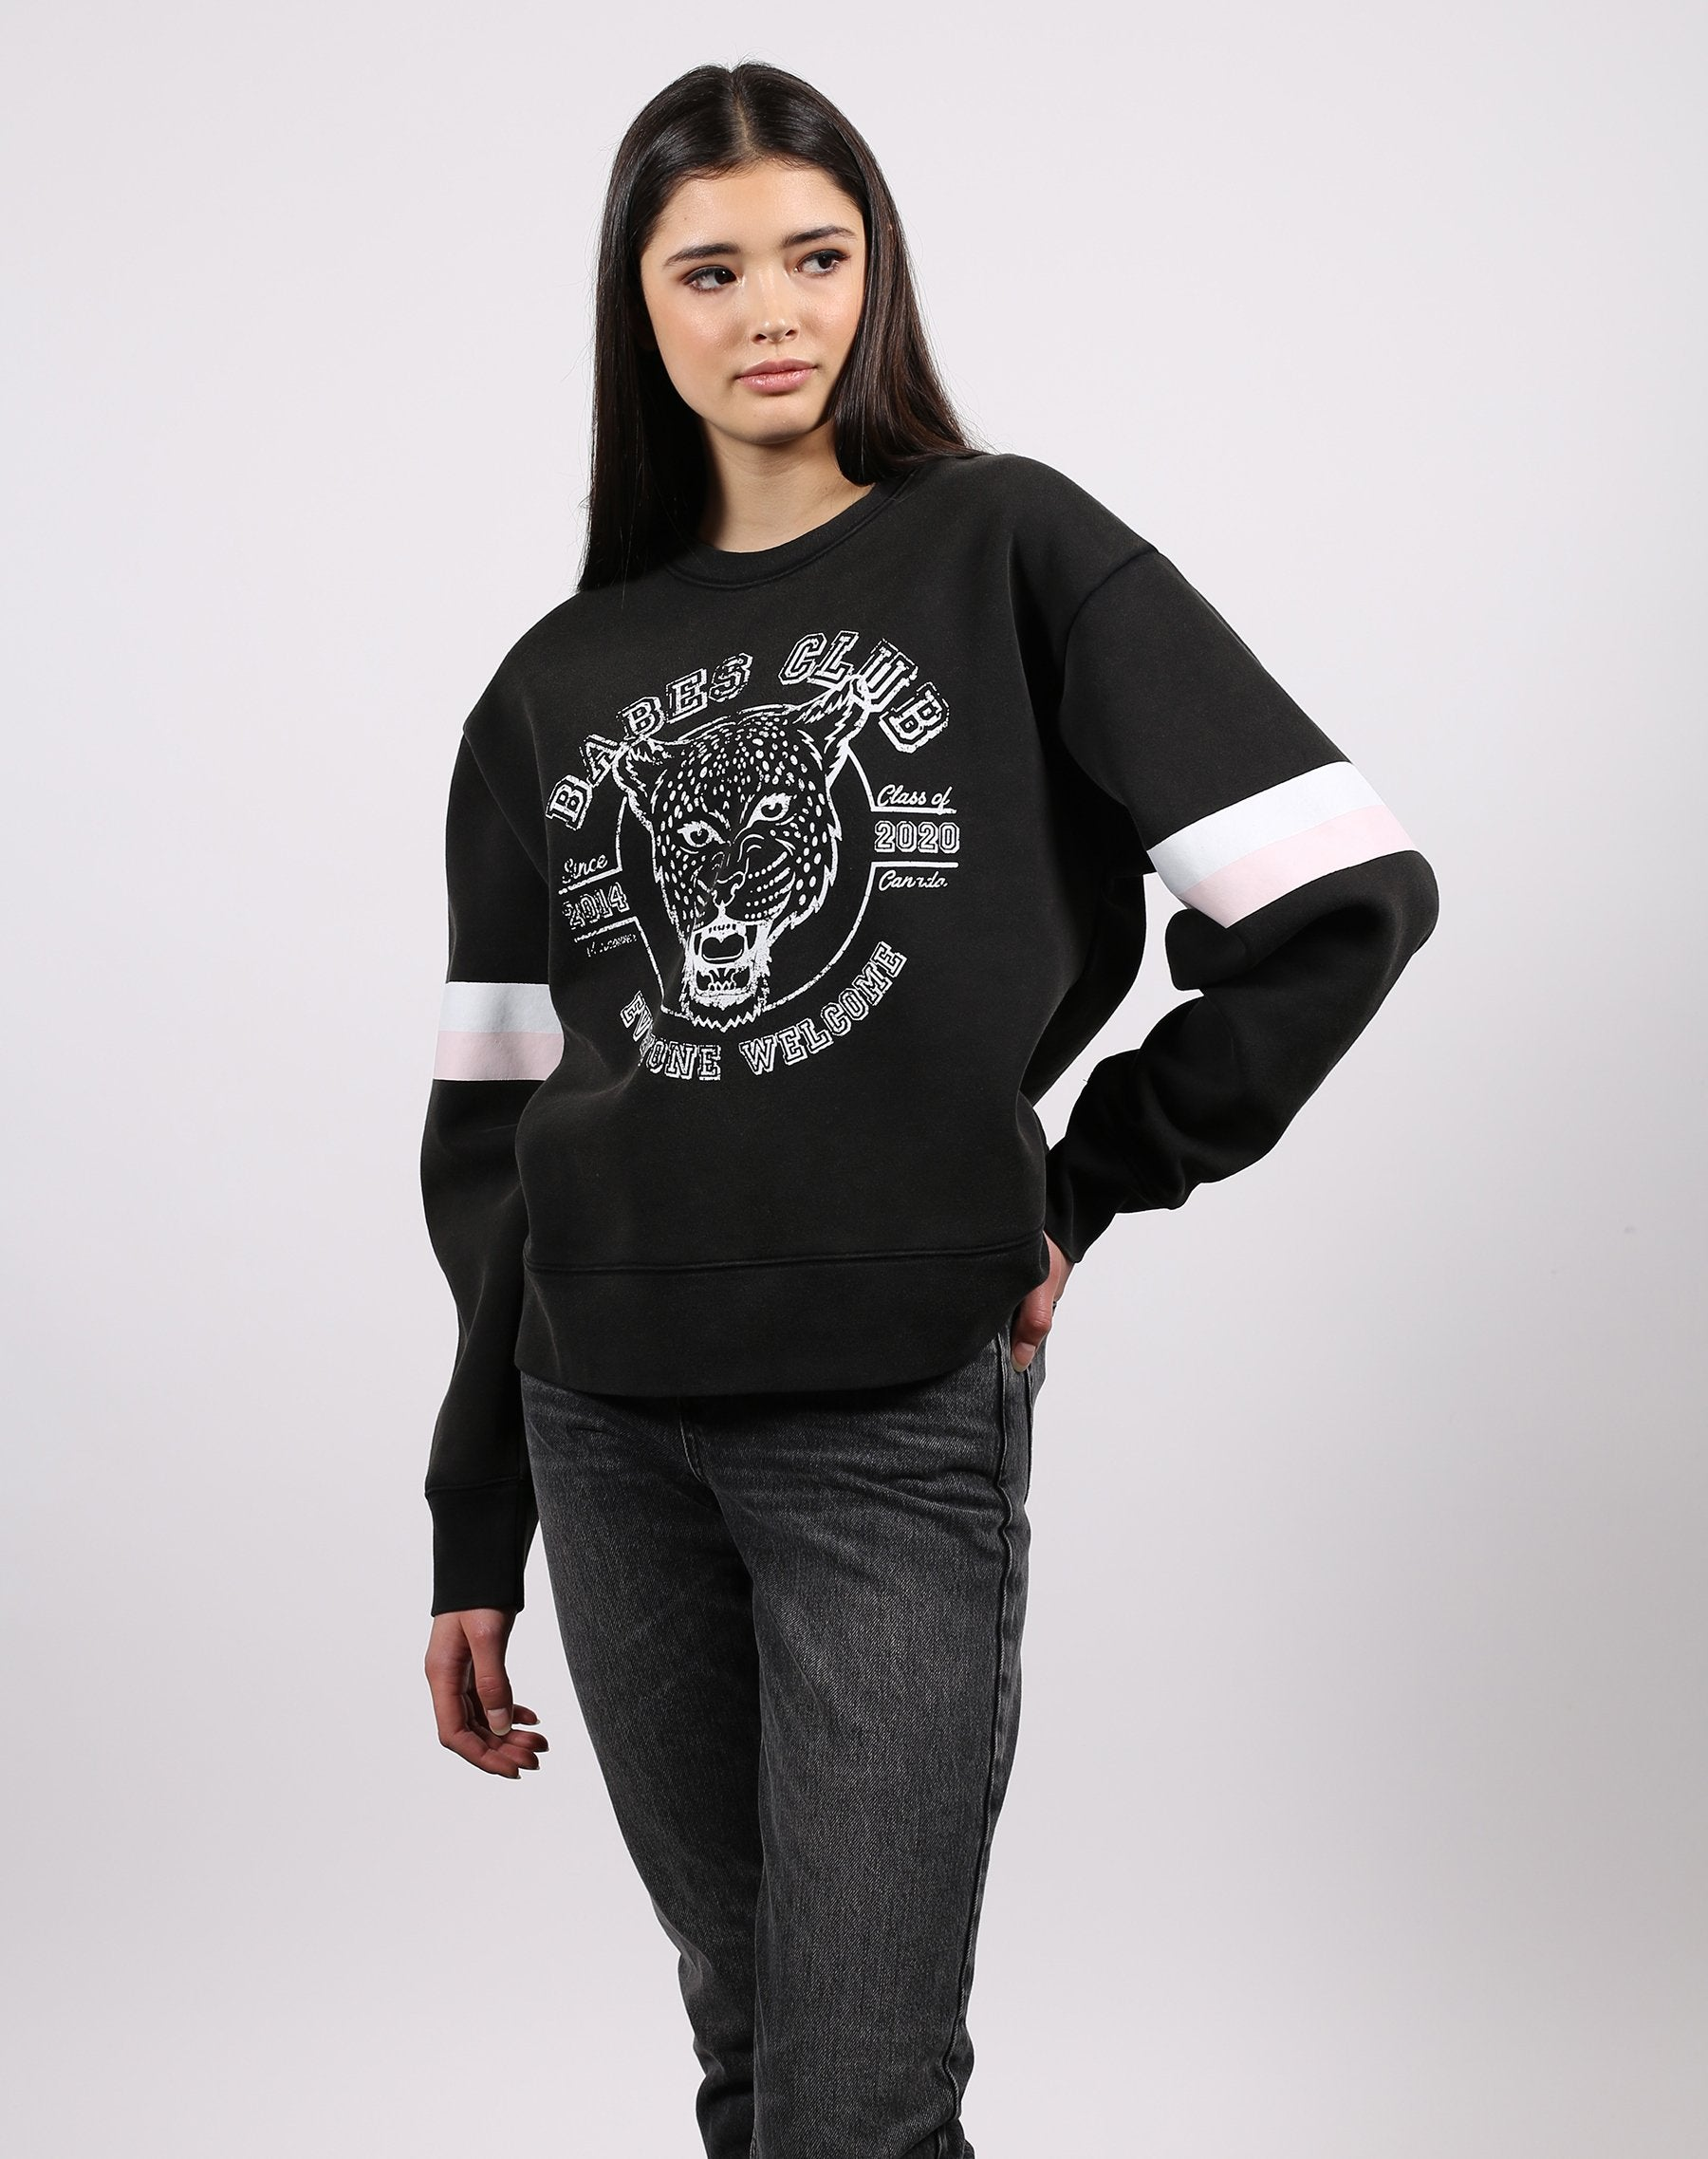 The Leopard Step Sister Crew Neck Sweatshirt in acid wash from the 1981 collection by Brunette the Label